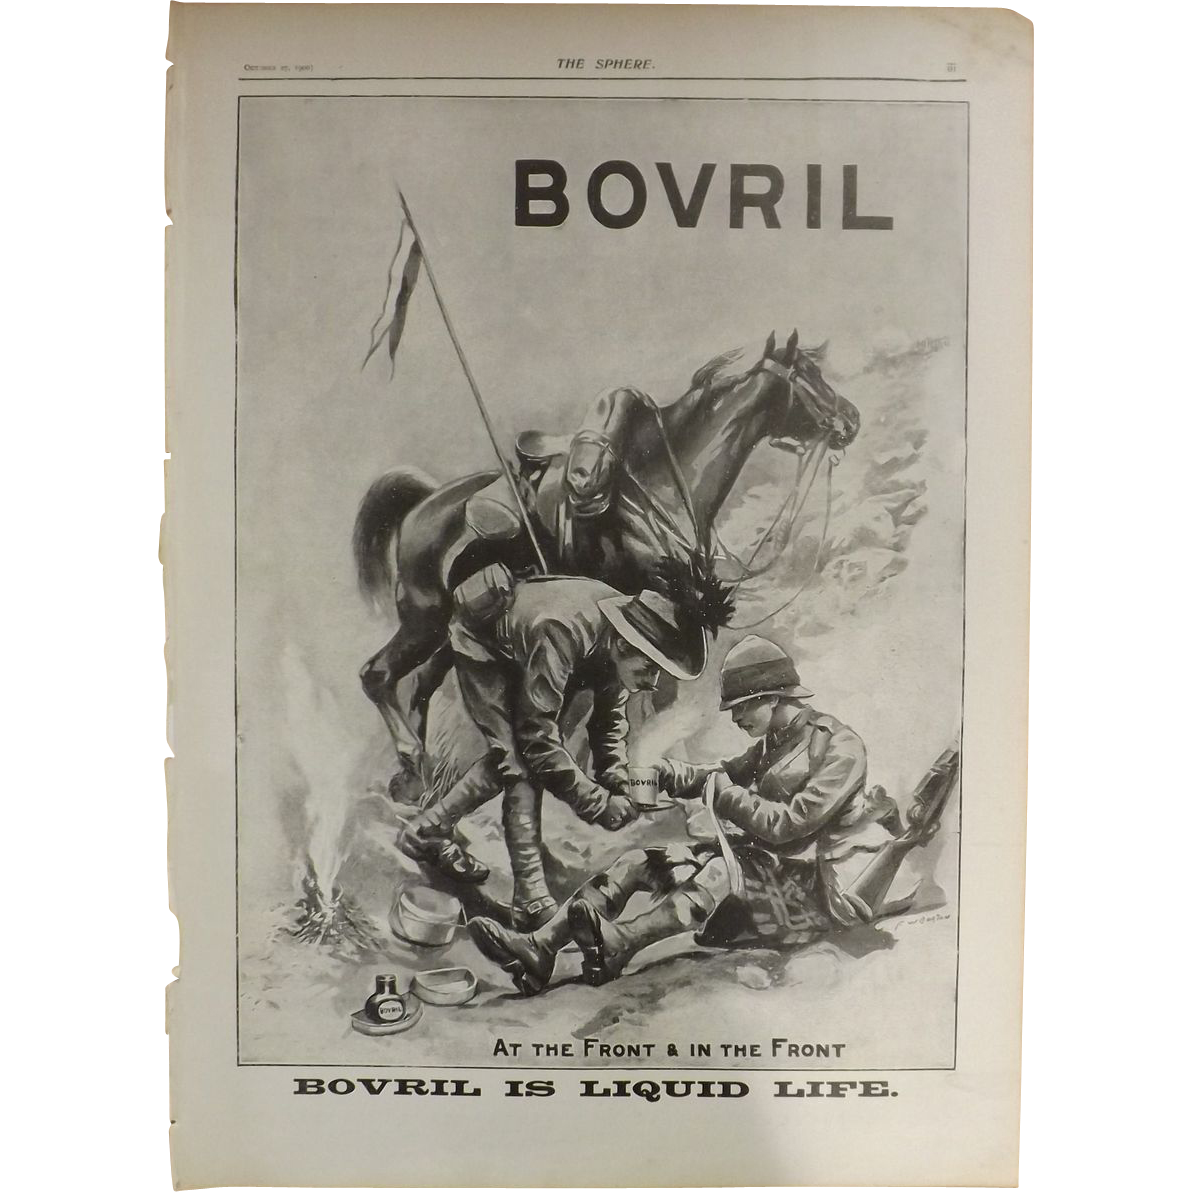 Original BOVRIL Advertisement with Boer War Theme - The Sphere Oct.1900